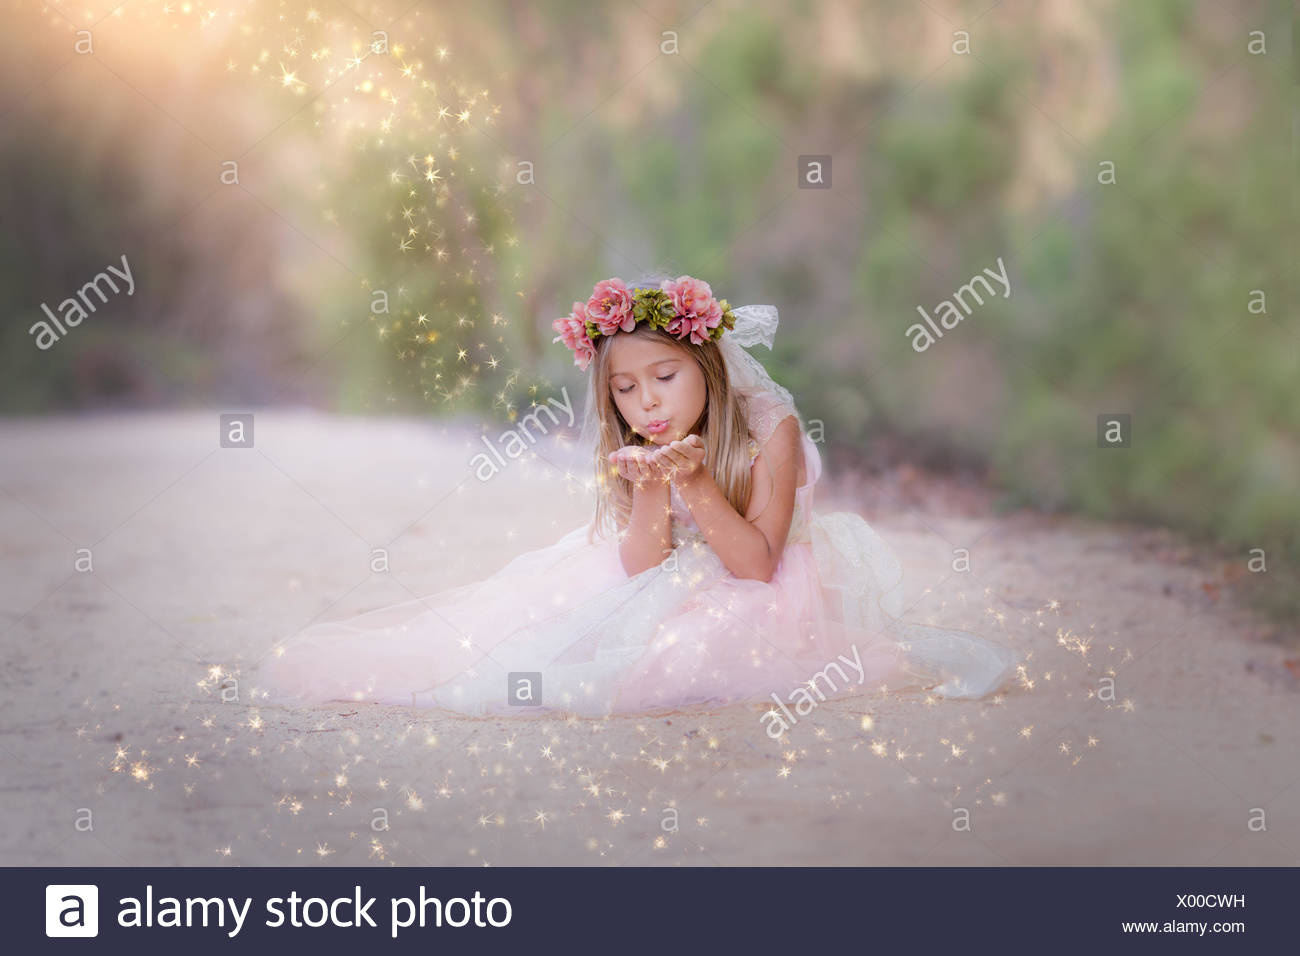 Girl sitting in the road, blowing glitter - Stock Image